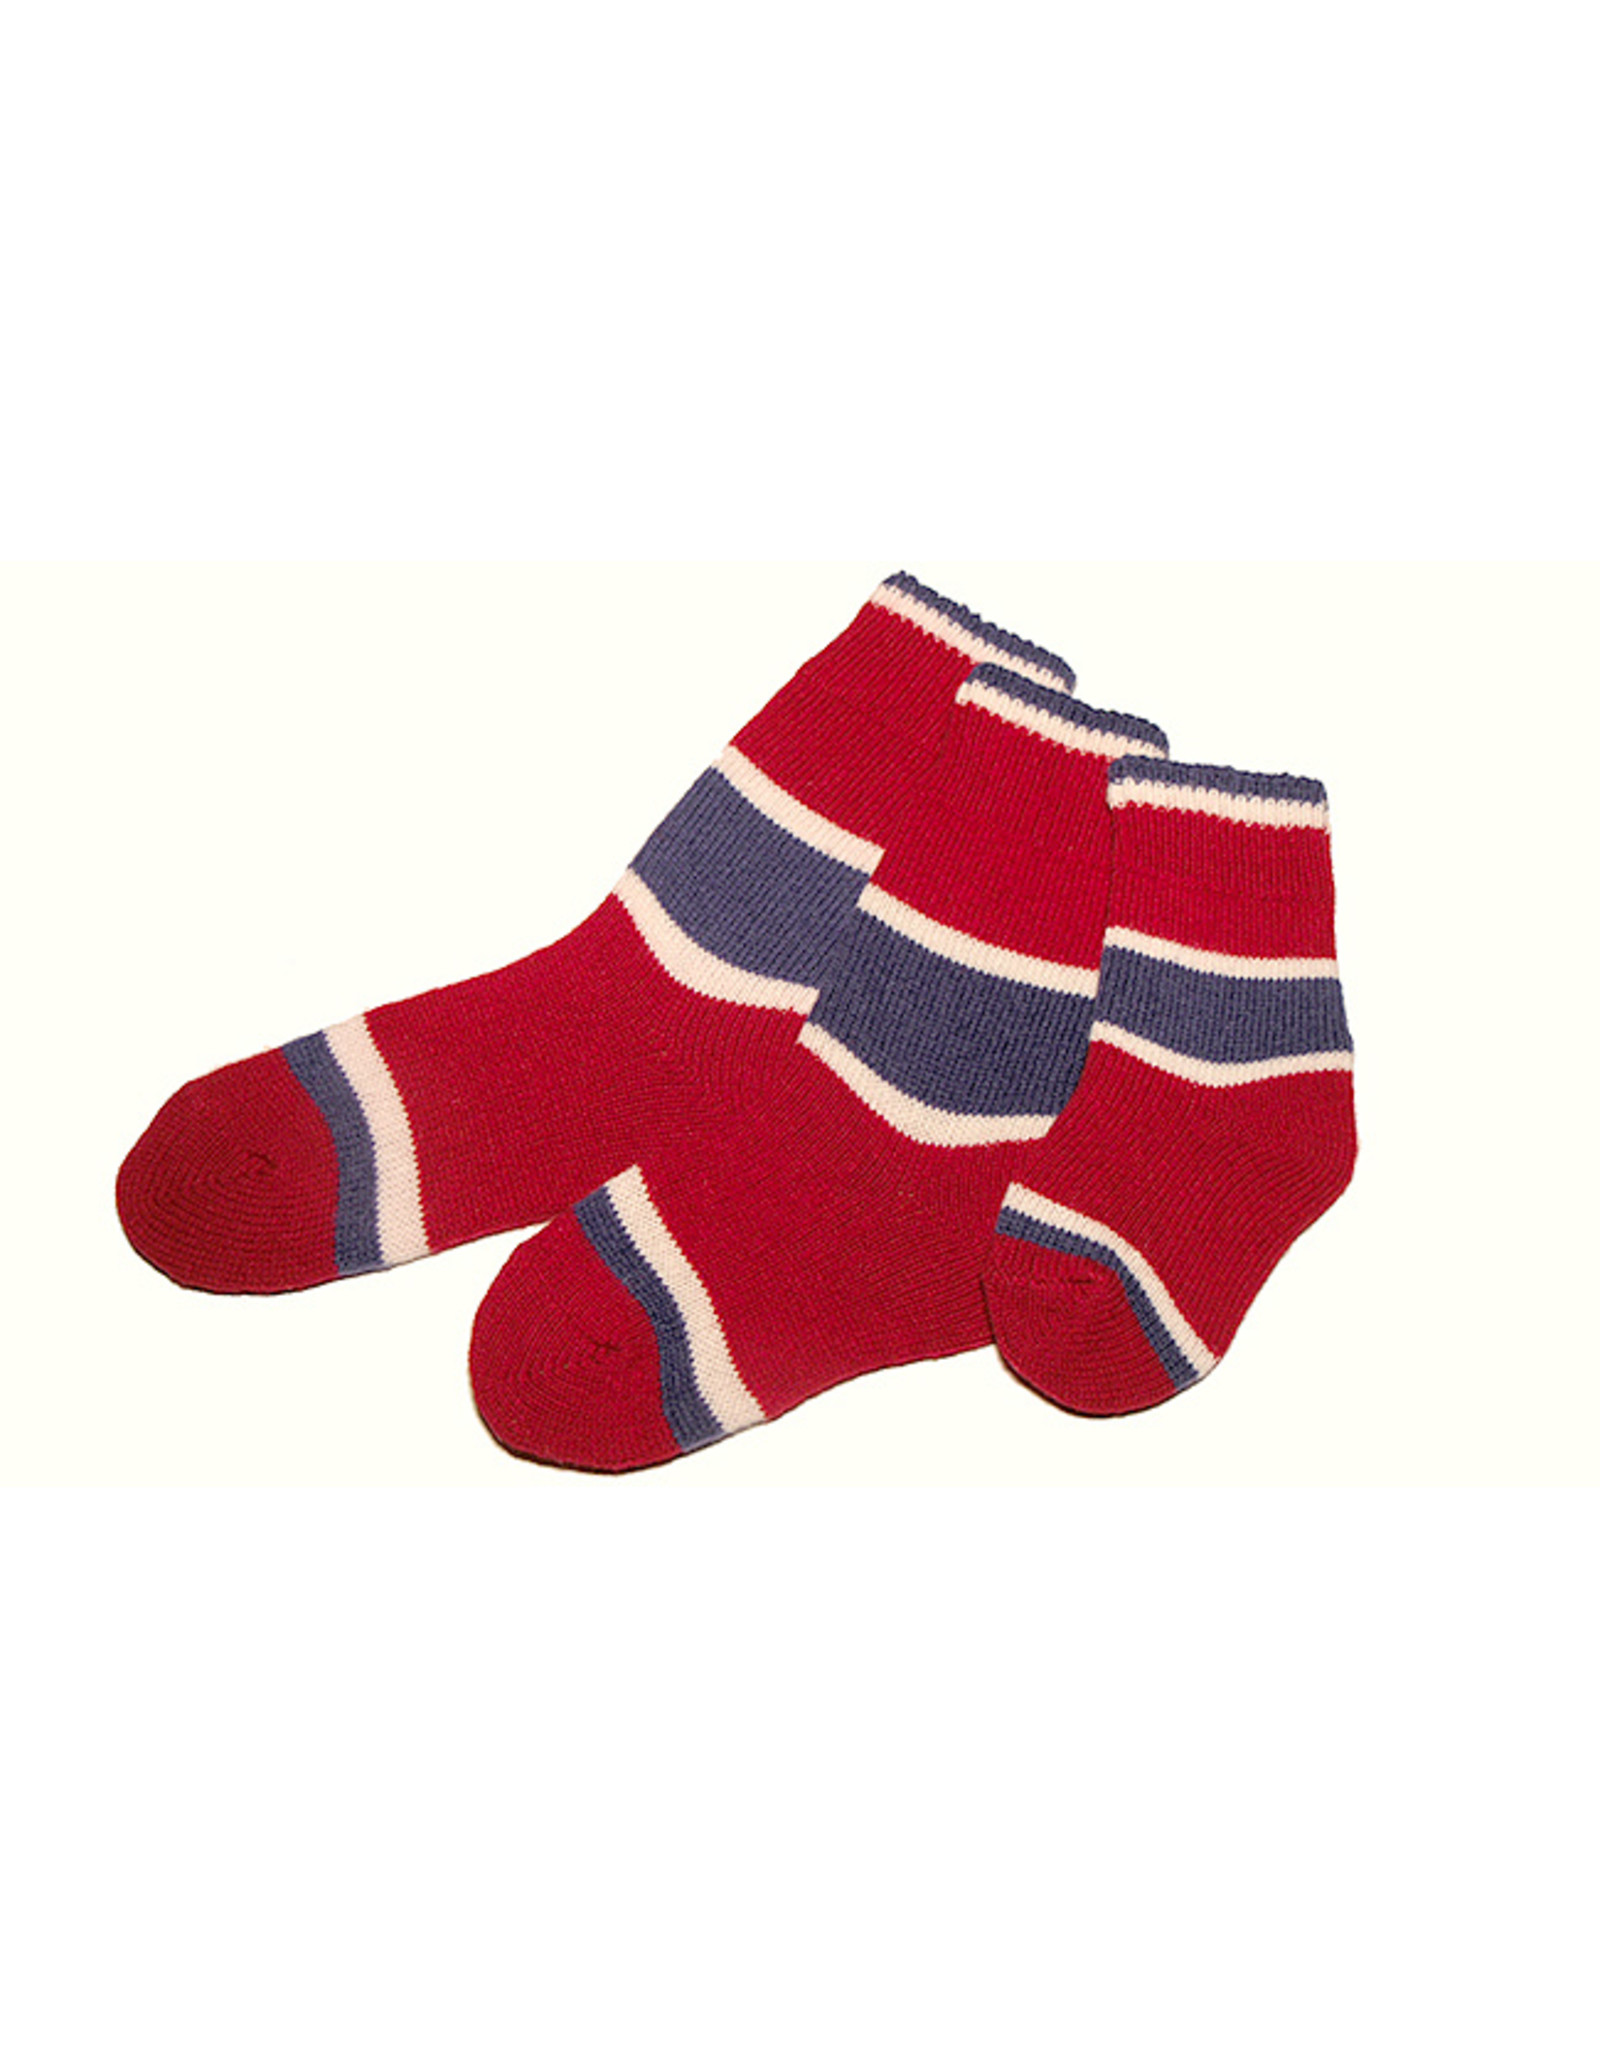 Bas de laine & mot coquin - Kids The Hockey (Red/Blue and White)